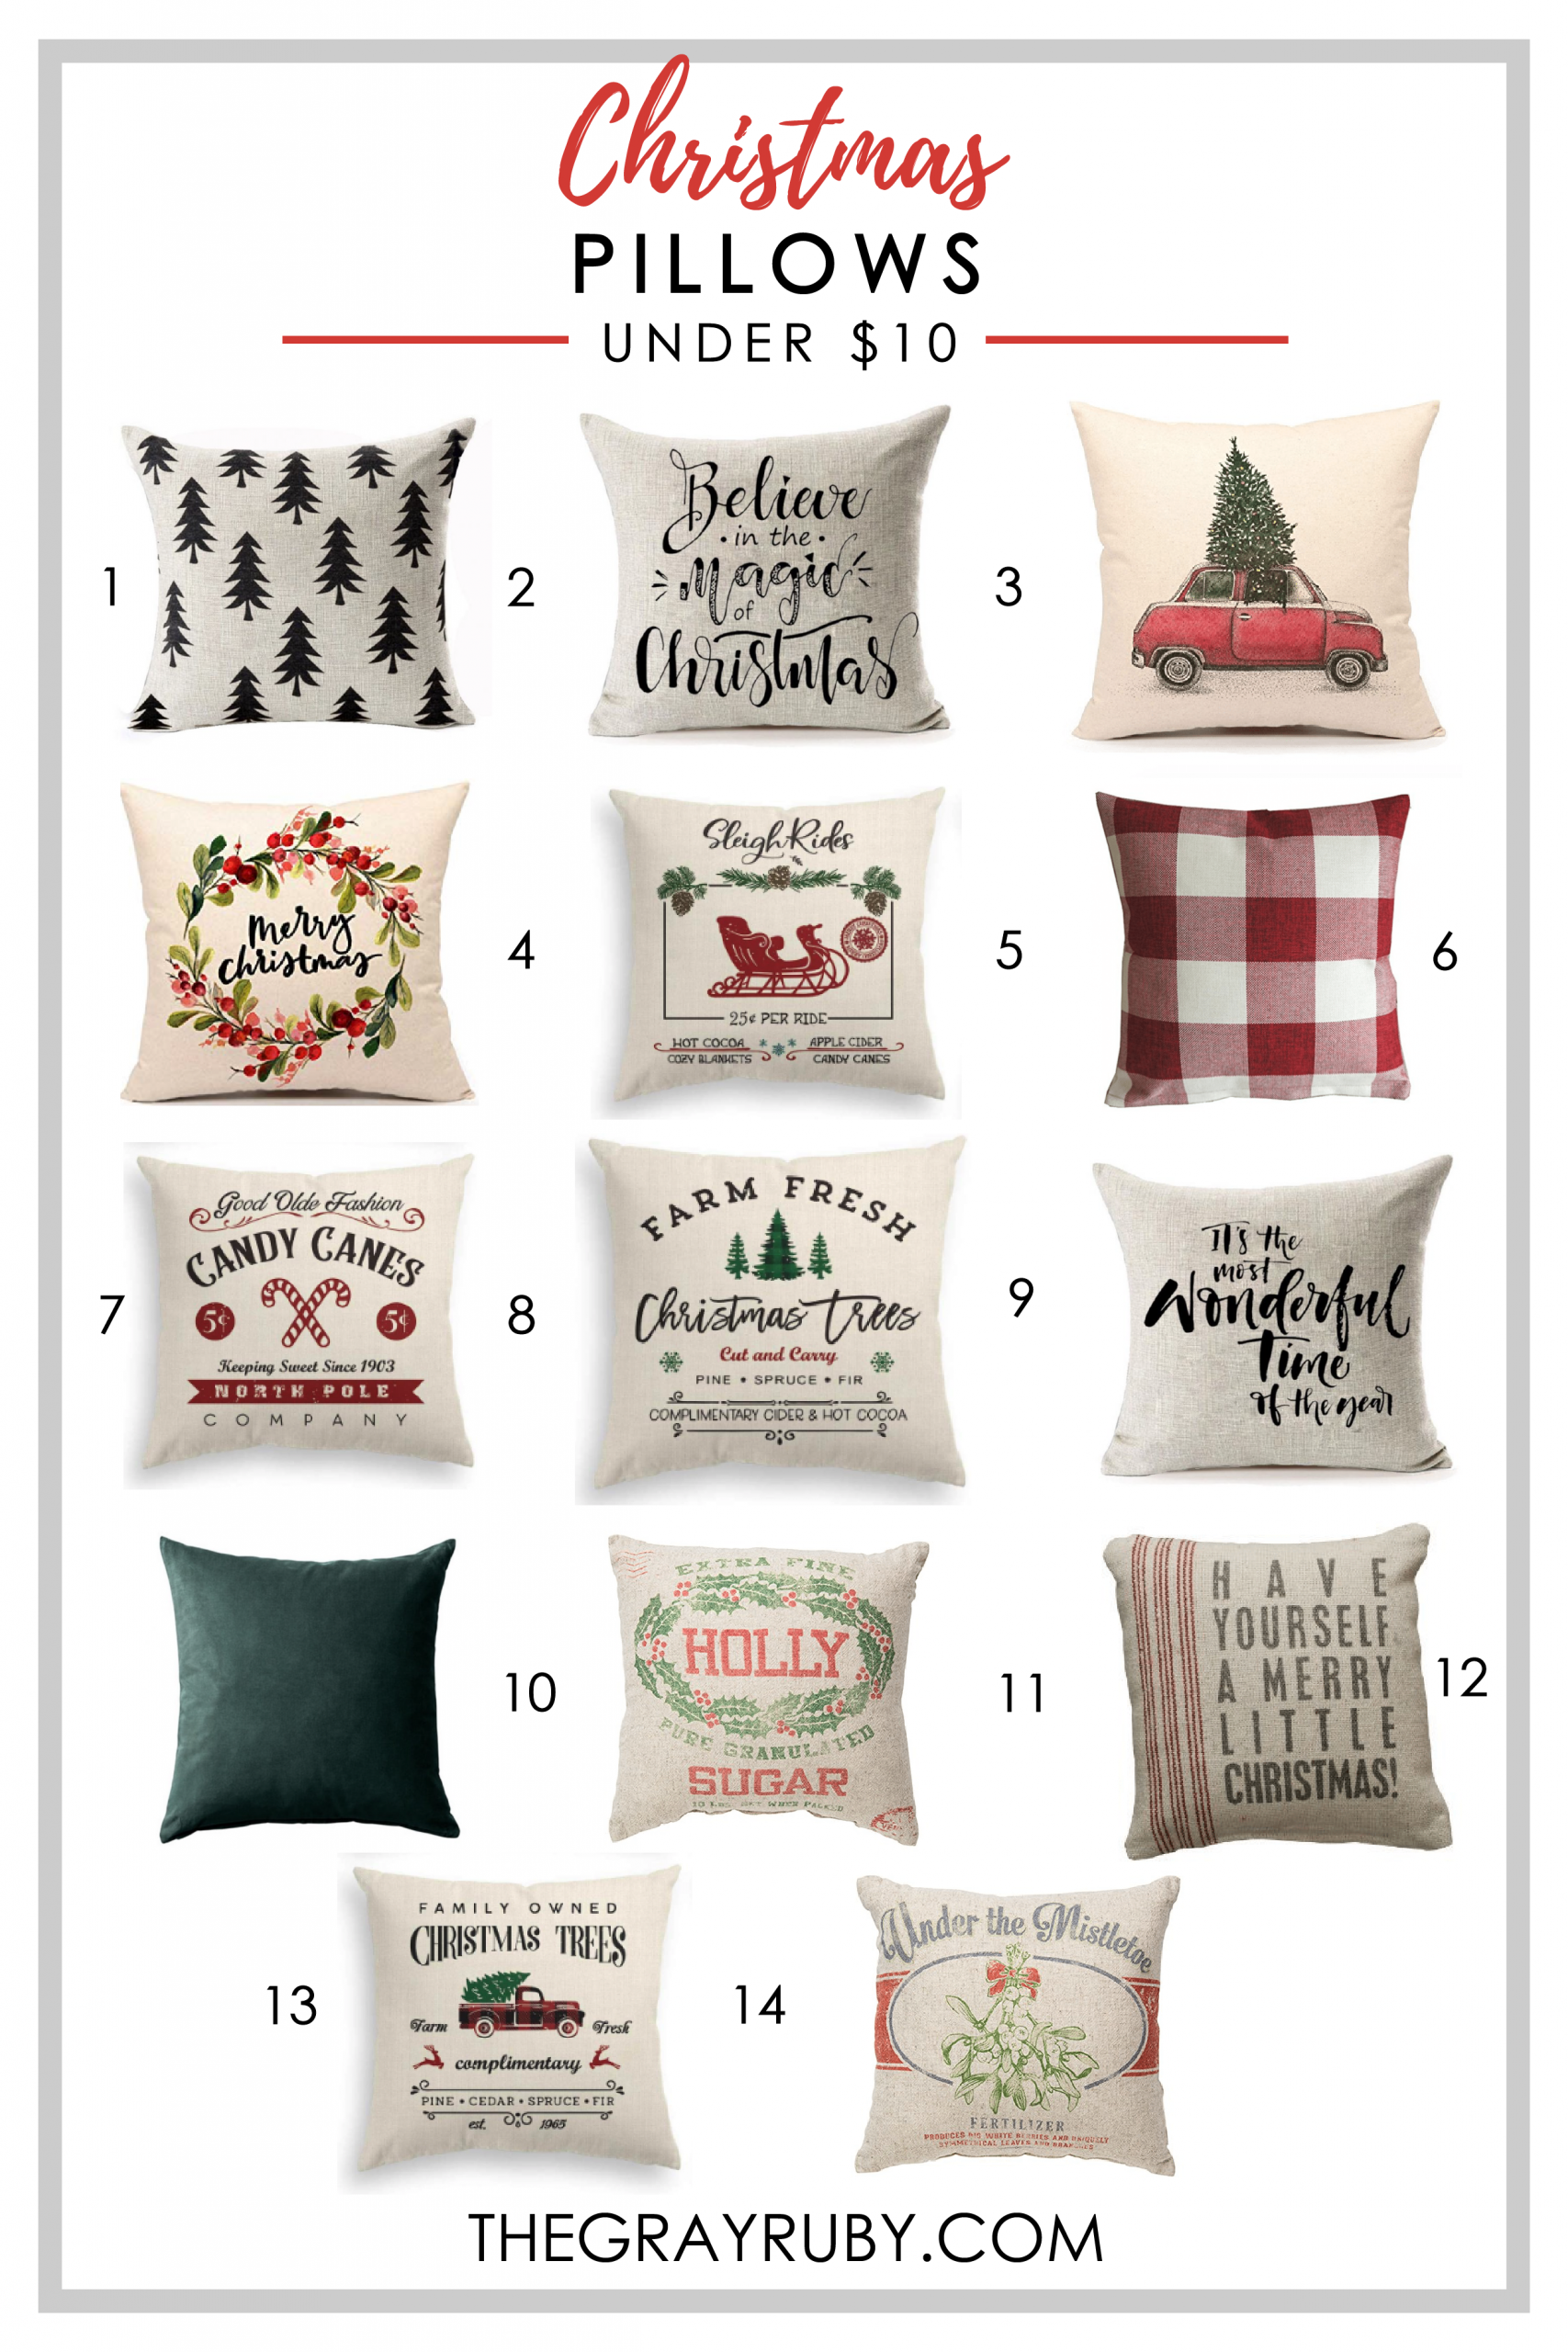 Christmas pillows - holiday pillows for under $10